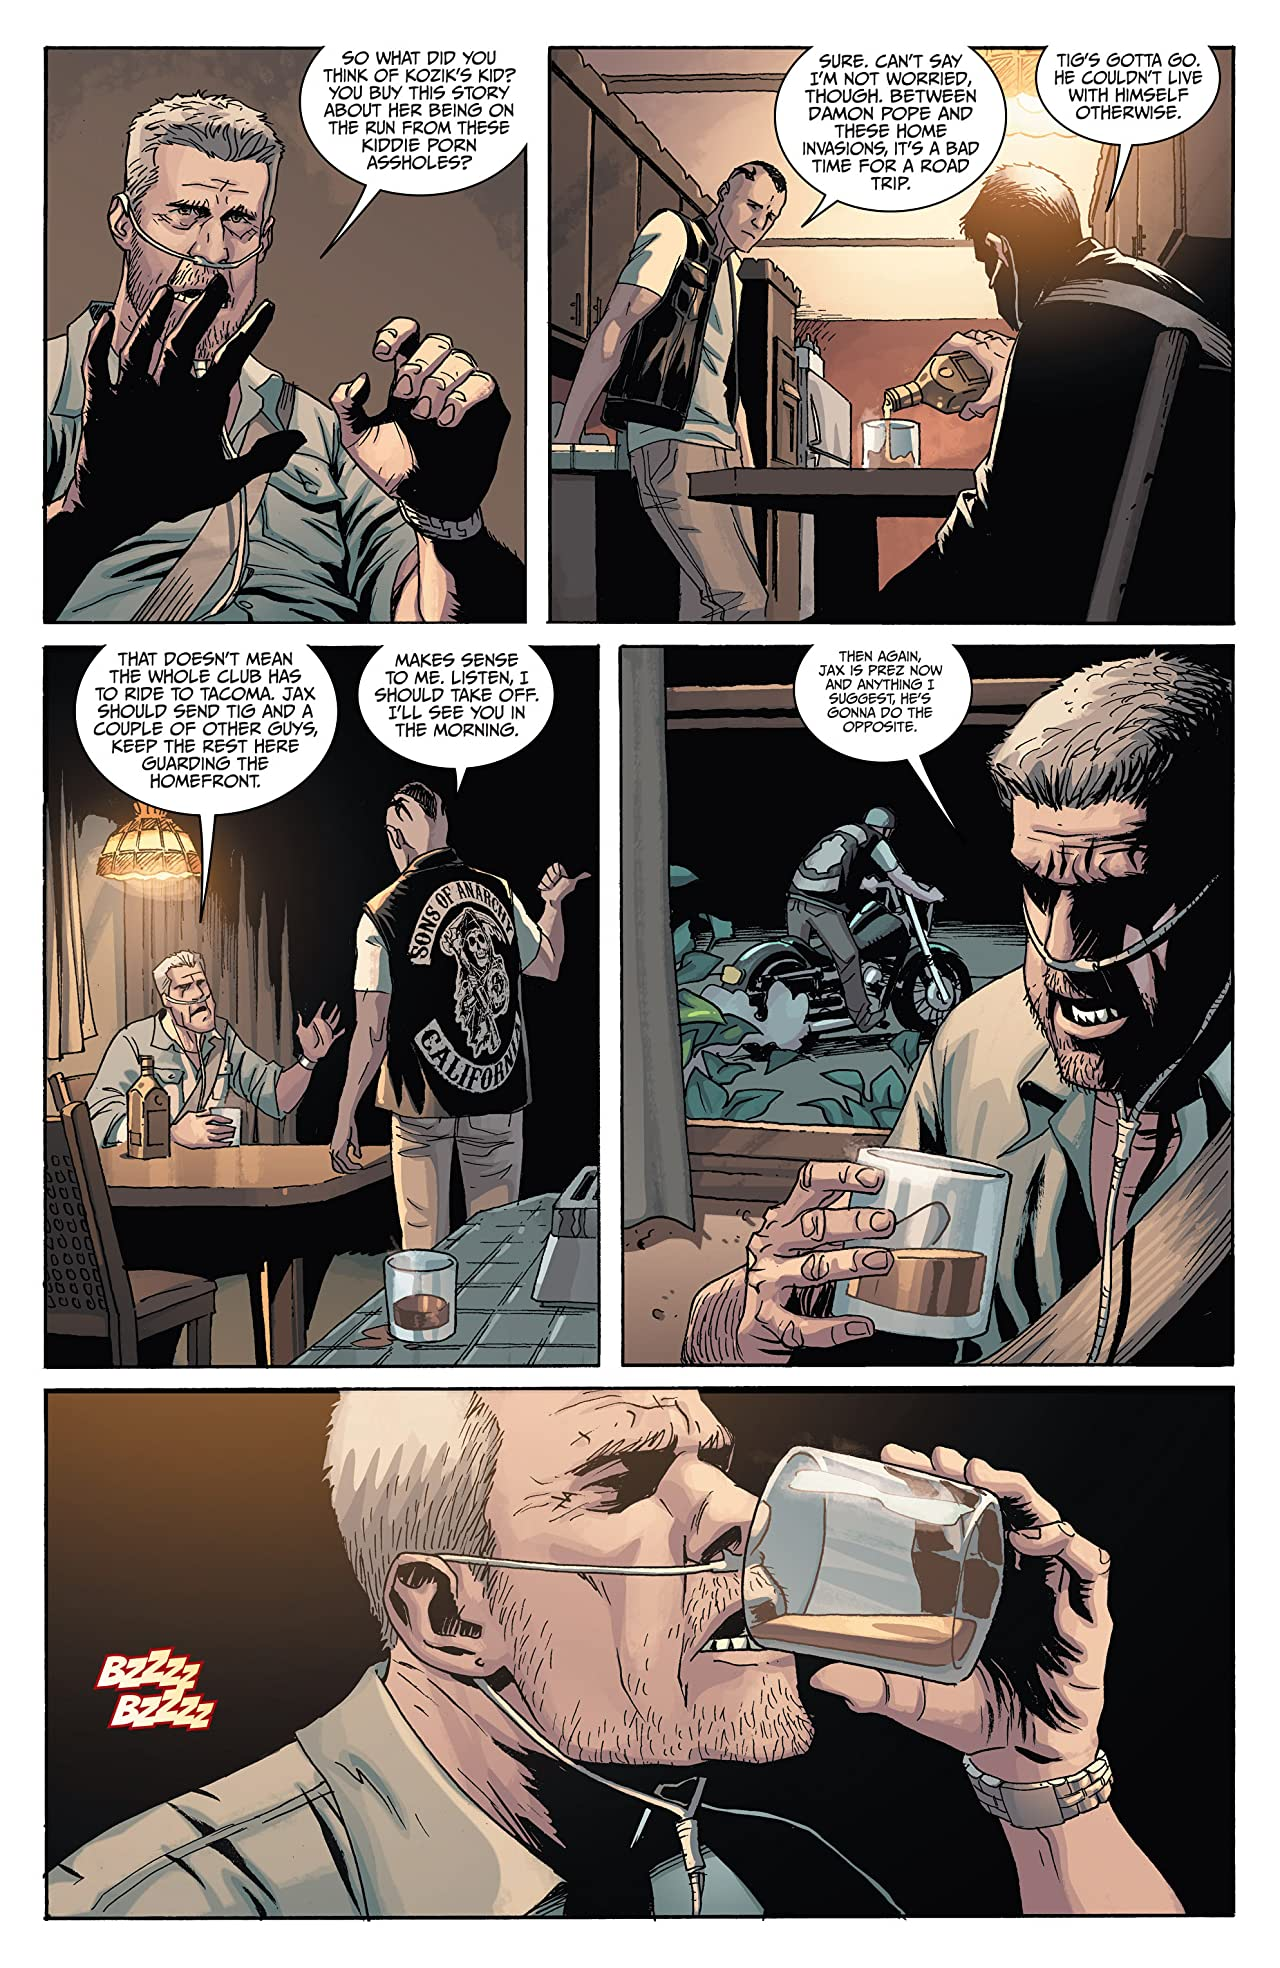 Sons of Anarchy #3 (of 6)